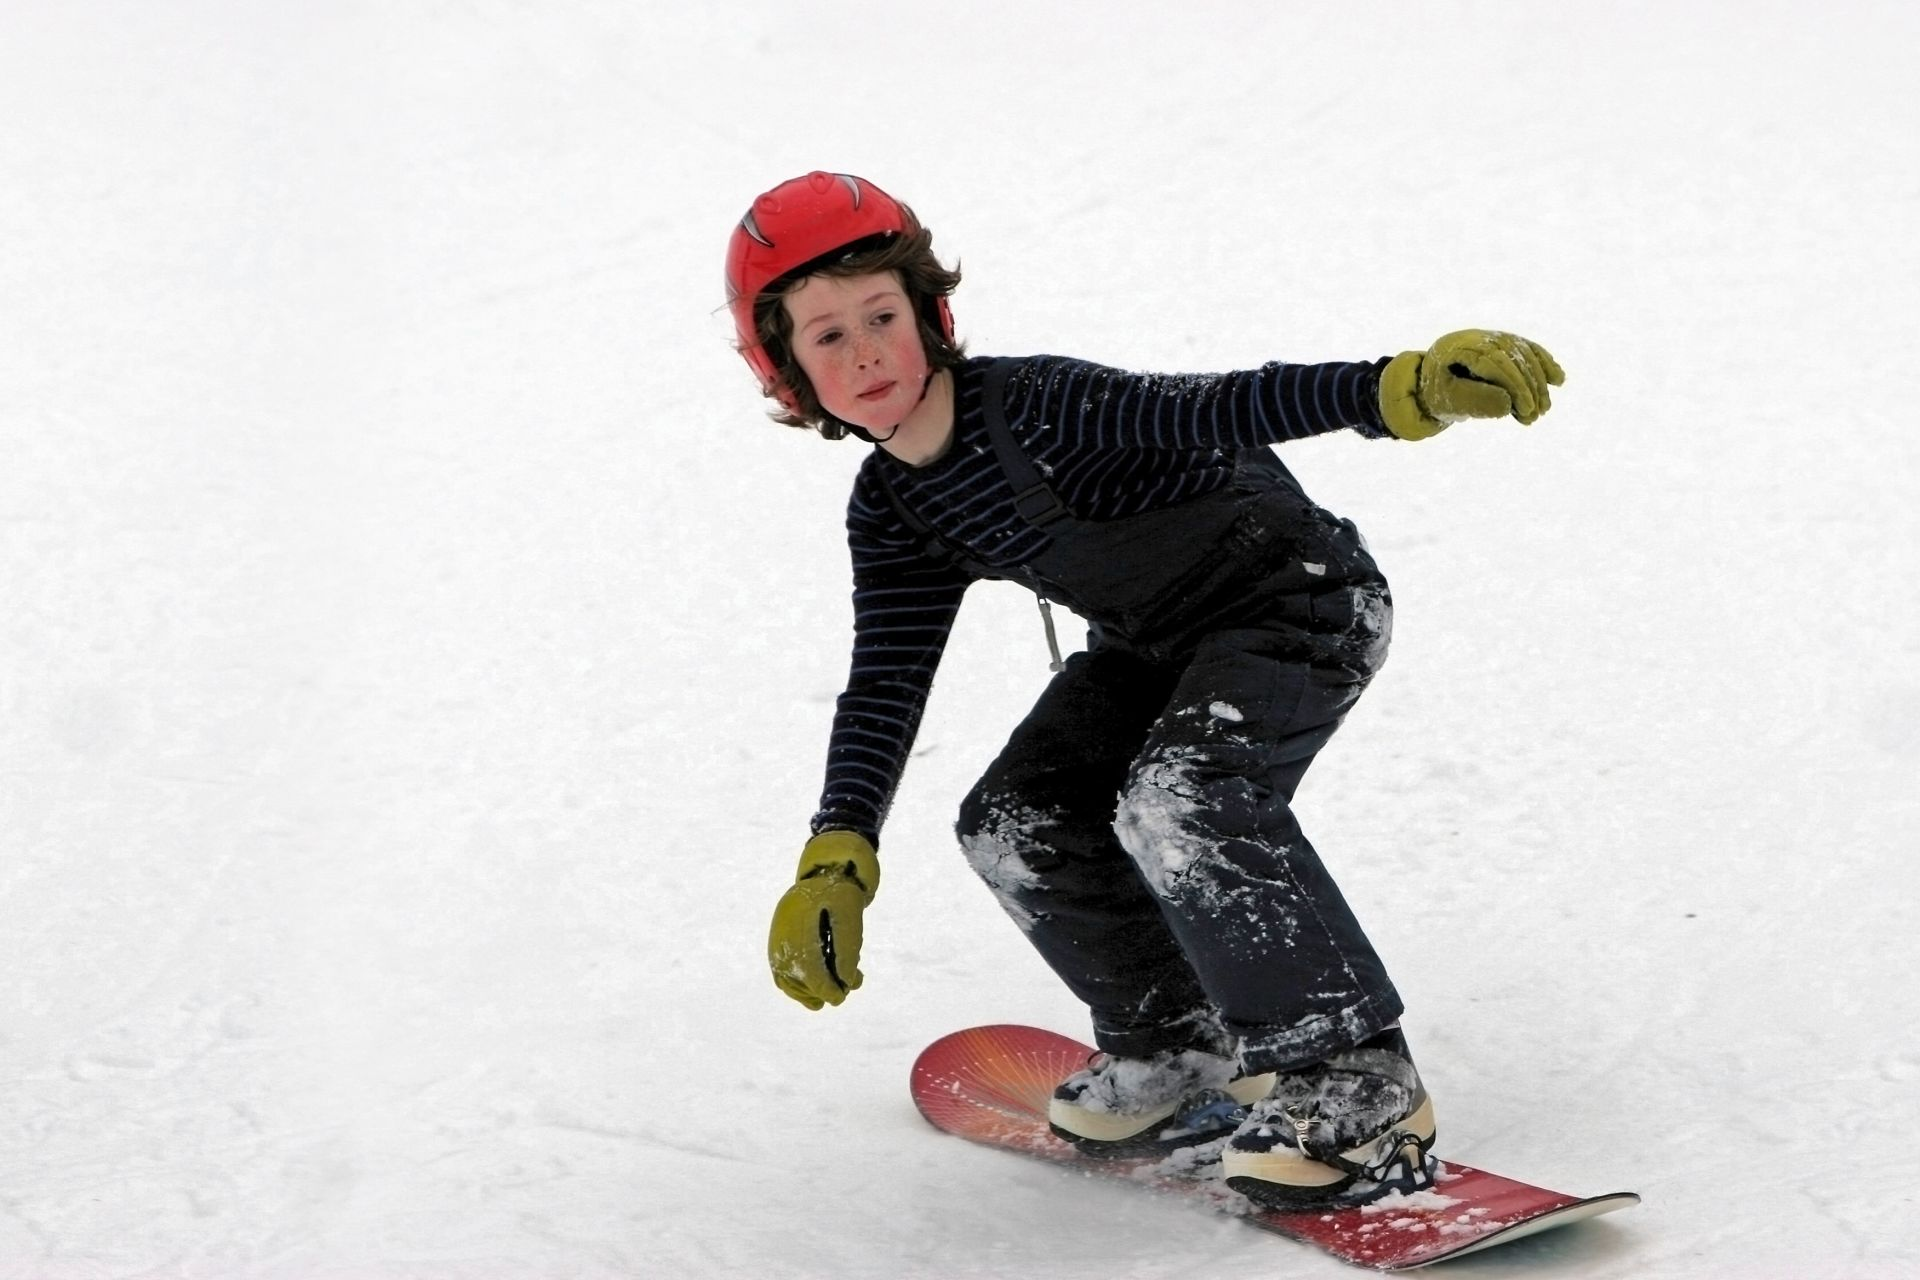 Facts About Snowboarding For Kids DK Find Out